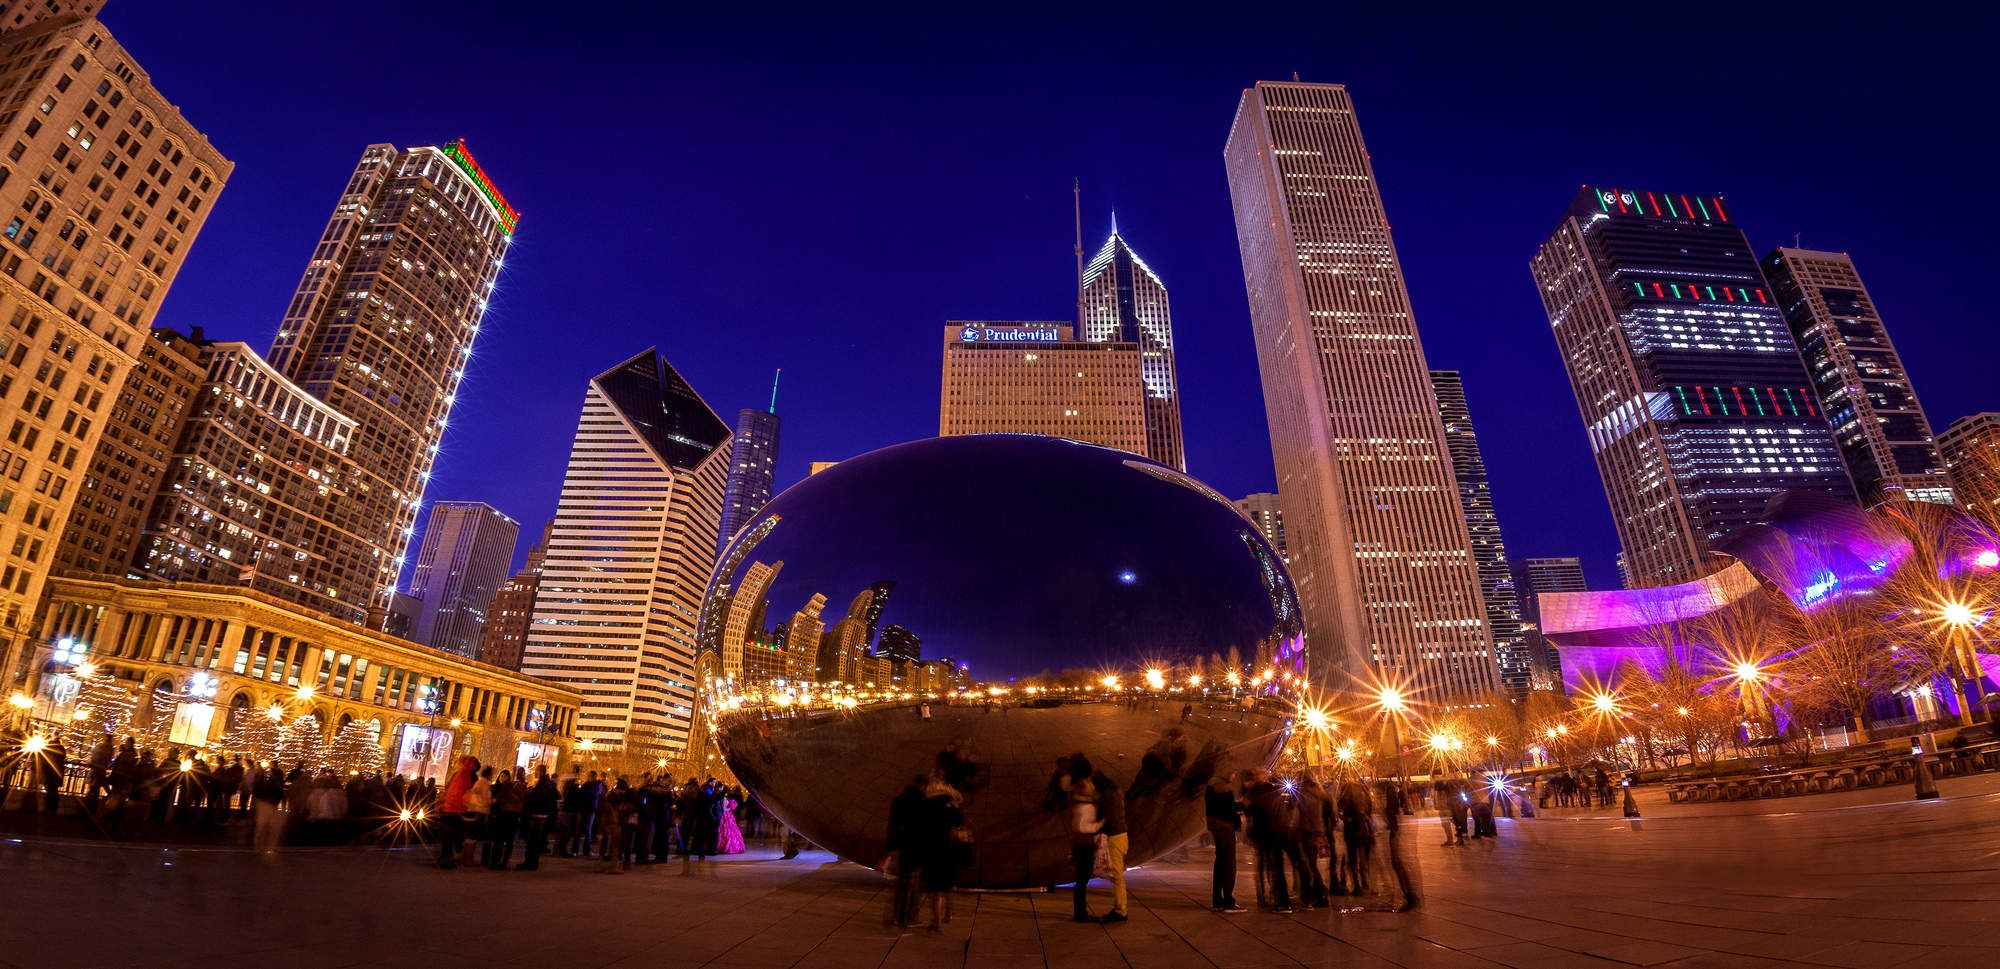 10 Elegant Great Date Ideas In Chicago 29 chicago date ideas to help you find love this season 2020